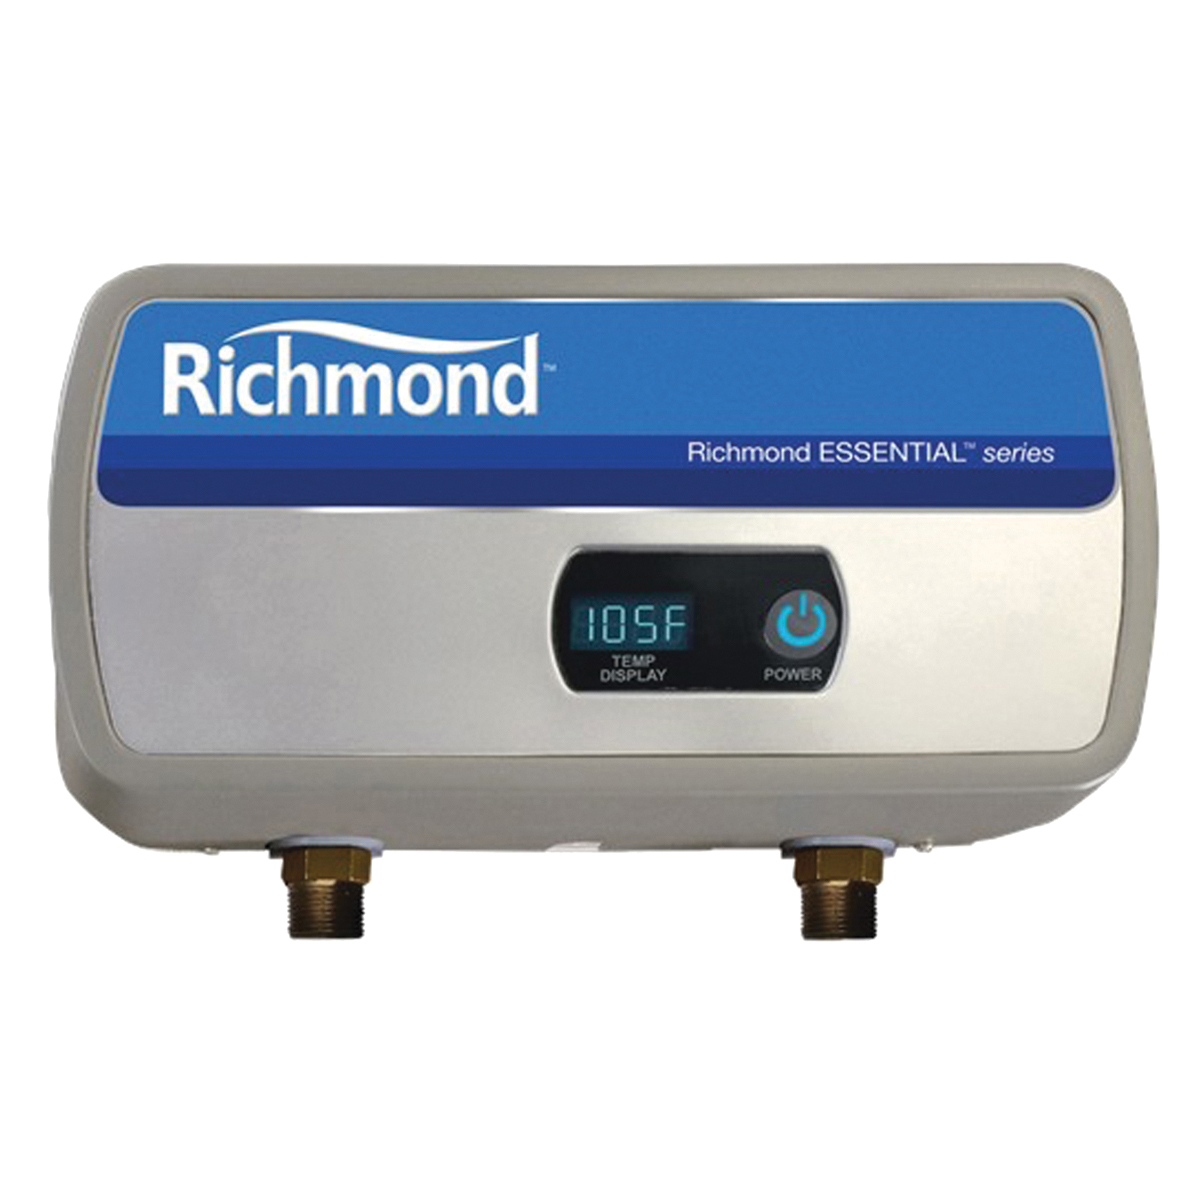 Picture of Richmond RMTEX-04 Electric Heater, 29 A, 120 V, 3.5 kW, 0.998 Energy Efficiency, 0.5 to 2 gpm